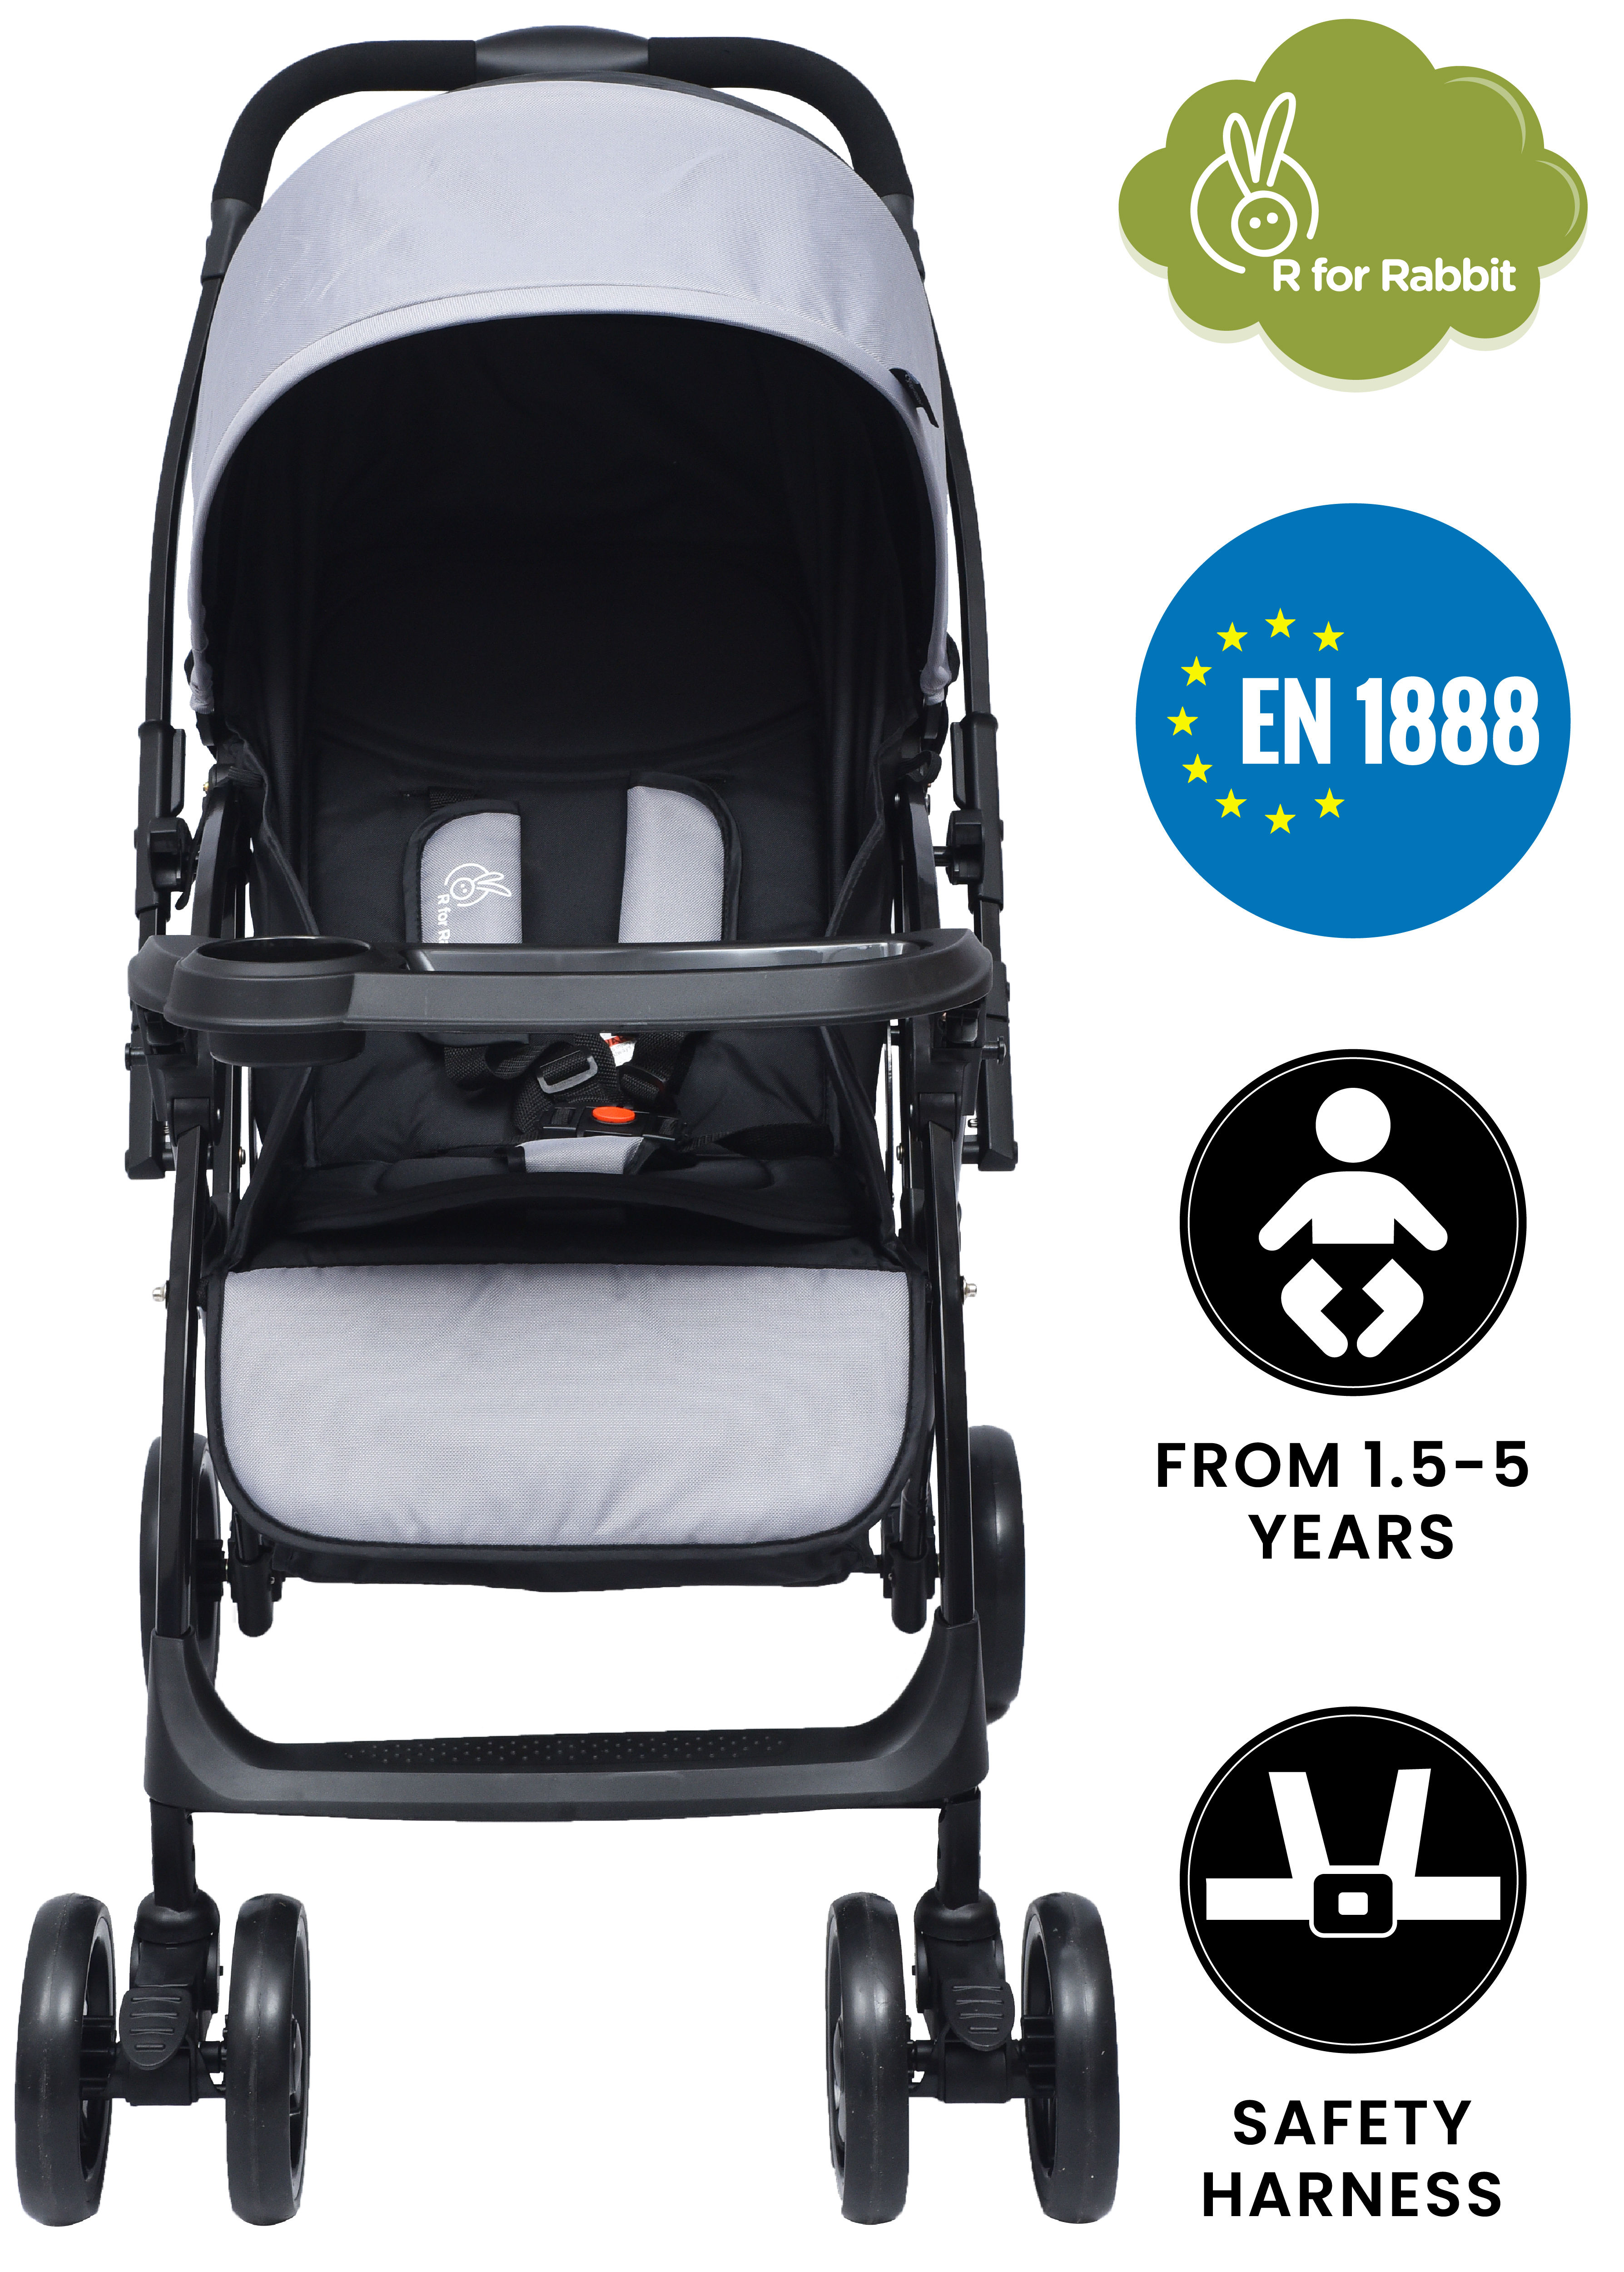 Mothercare | R for Rabbit Cuppy Cake Grand Stroller Green